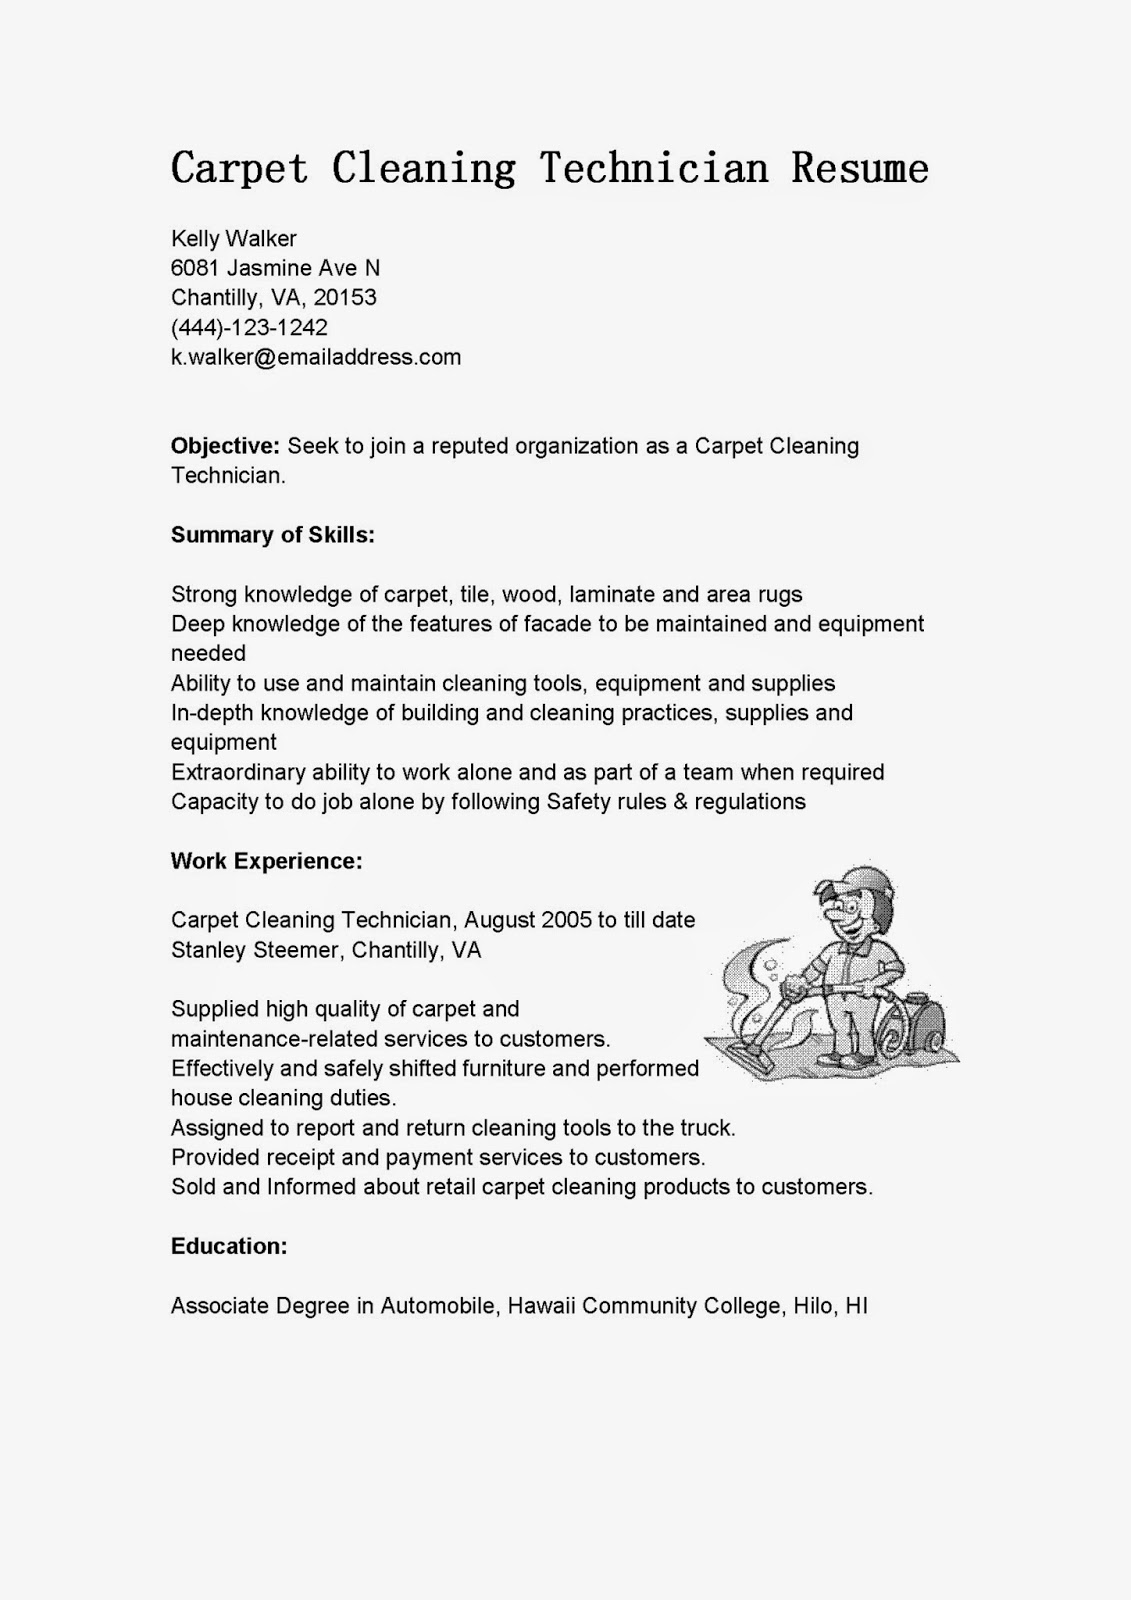 sample resume for janitorial jobs samplebusinessresumecom - Cleaner Sample Resume